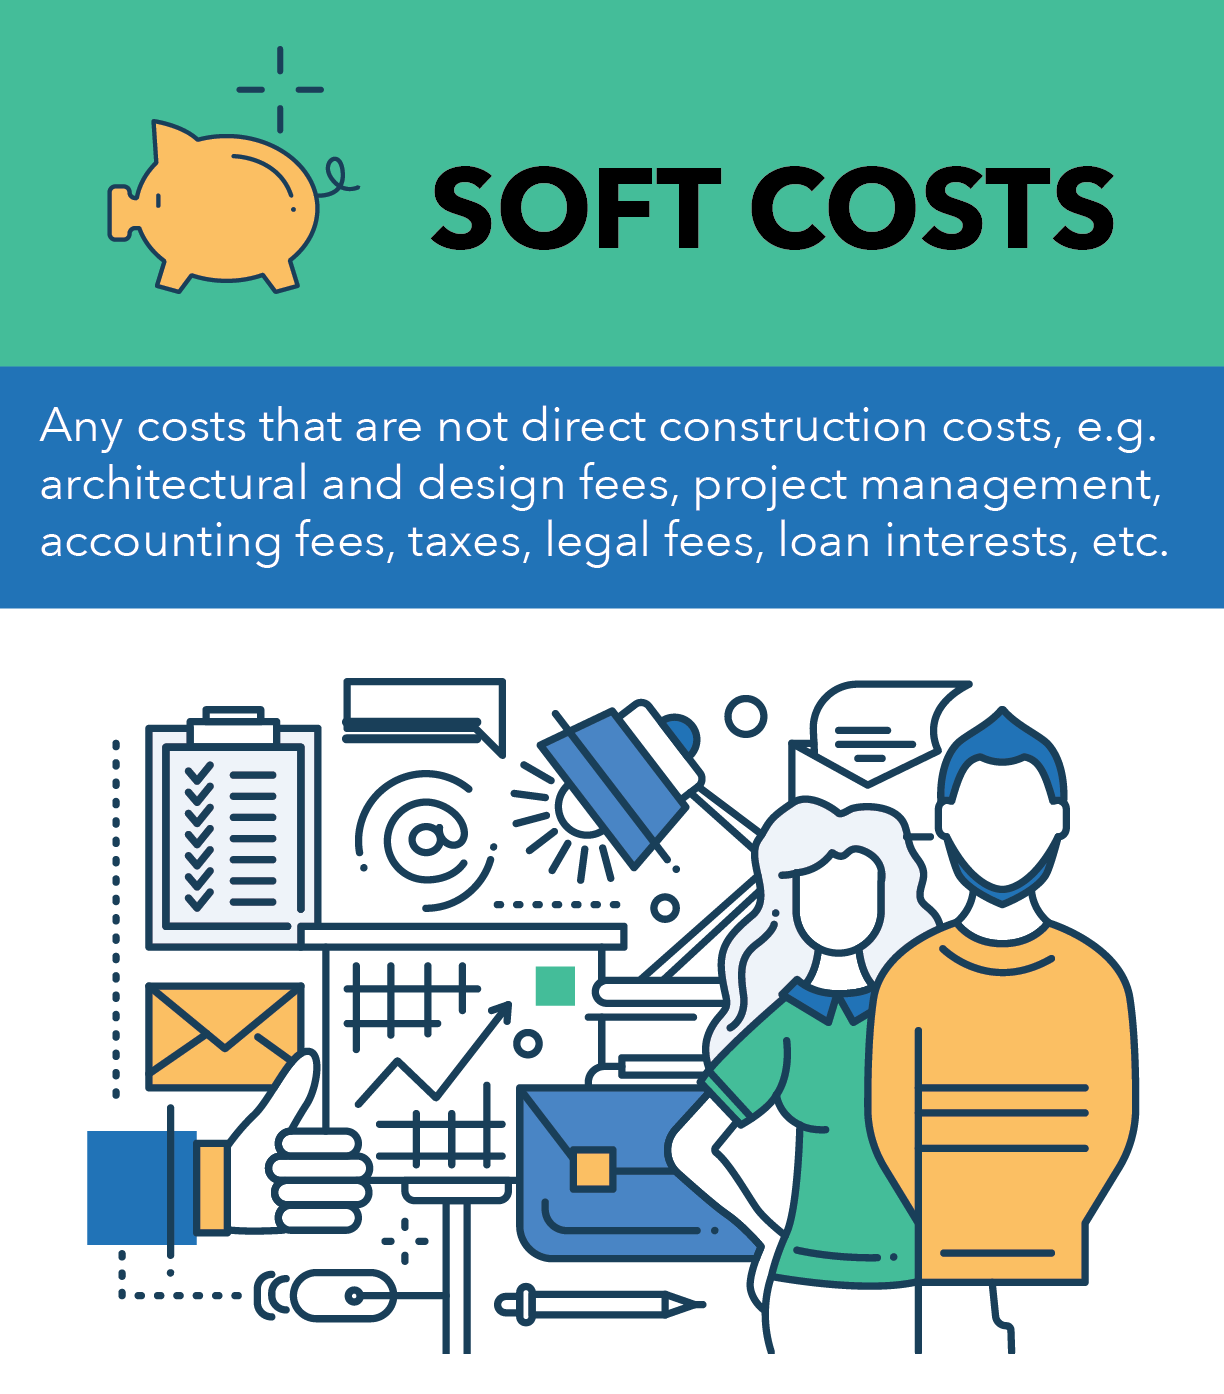 Soft costs